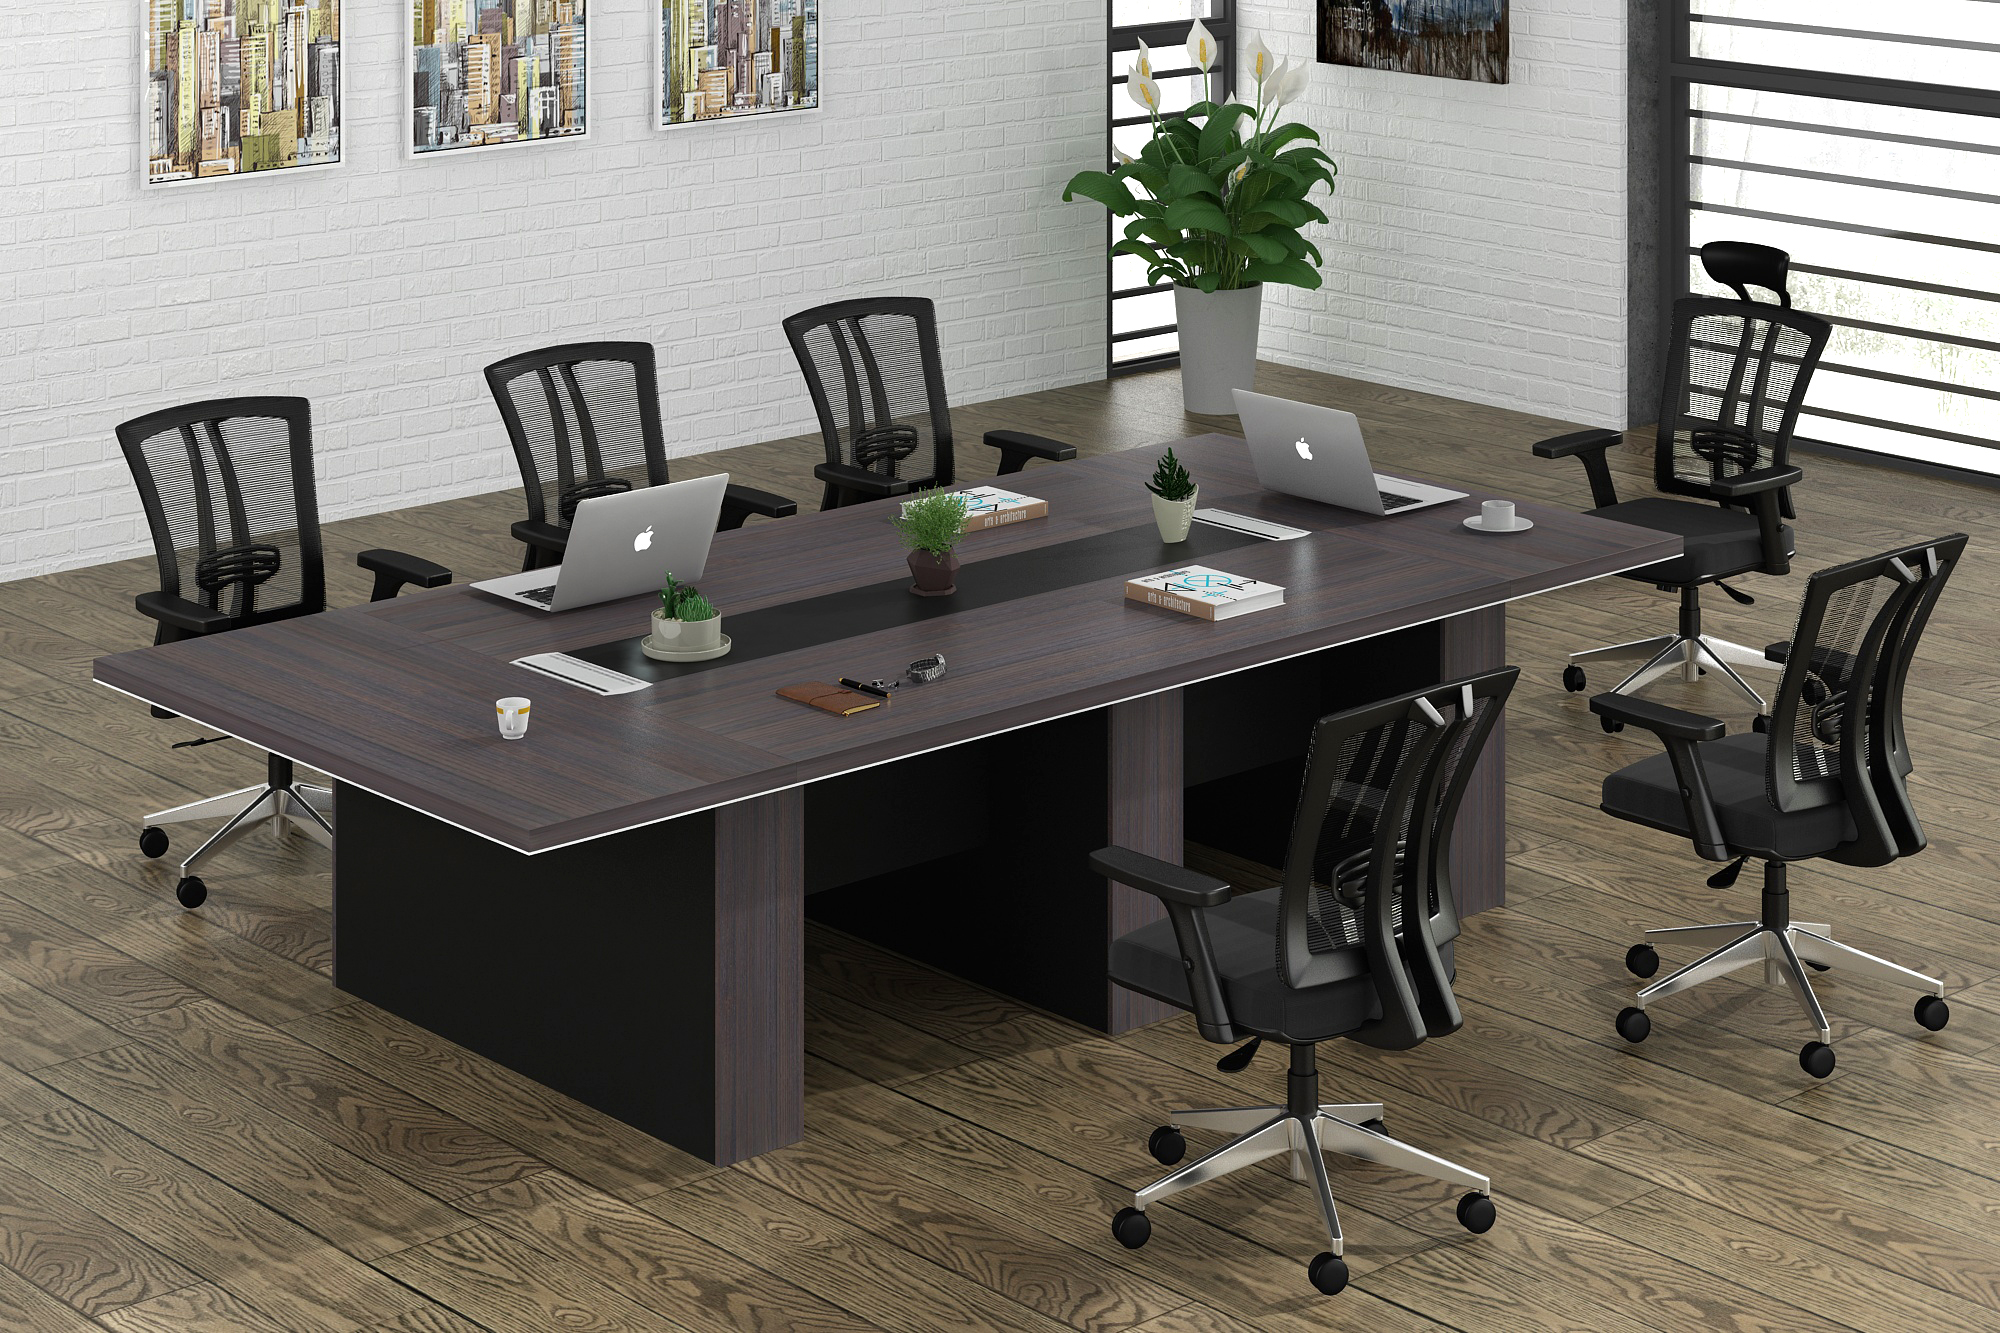 CF-BSM181 Modern Design Meeting Table